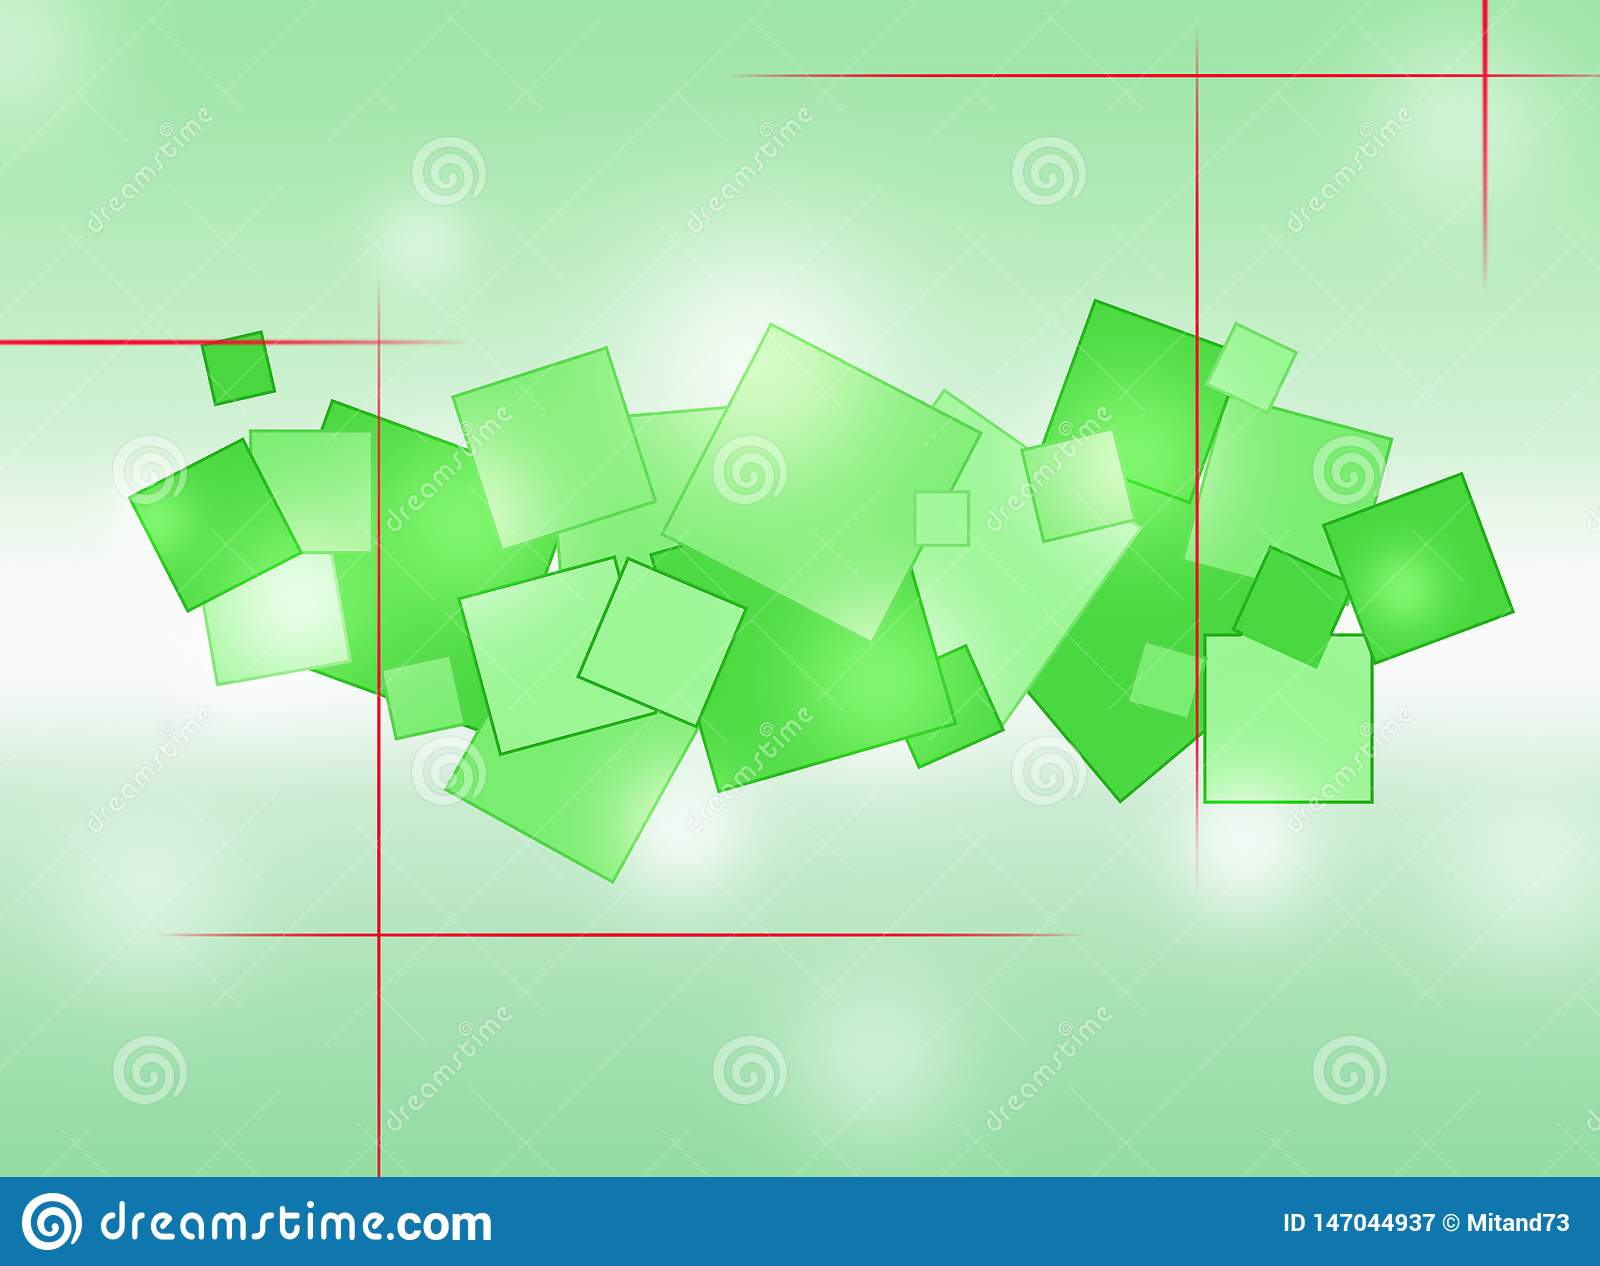 Background. Abstraction with colored circles